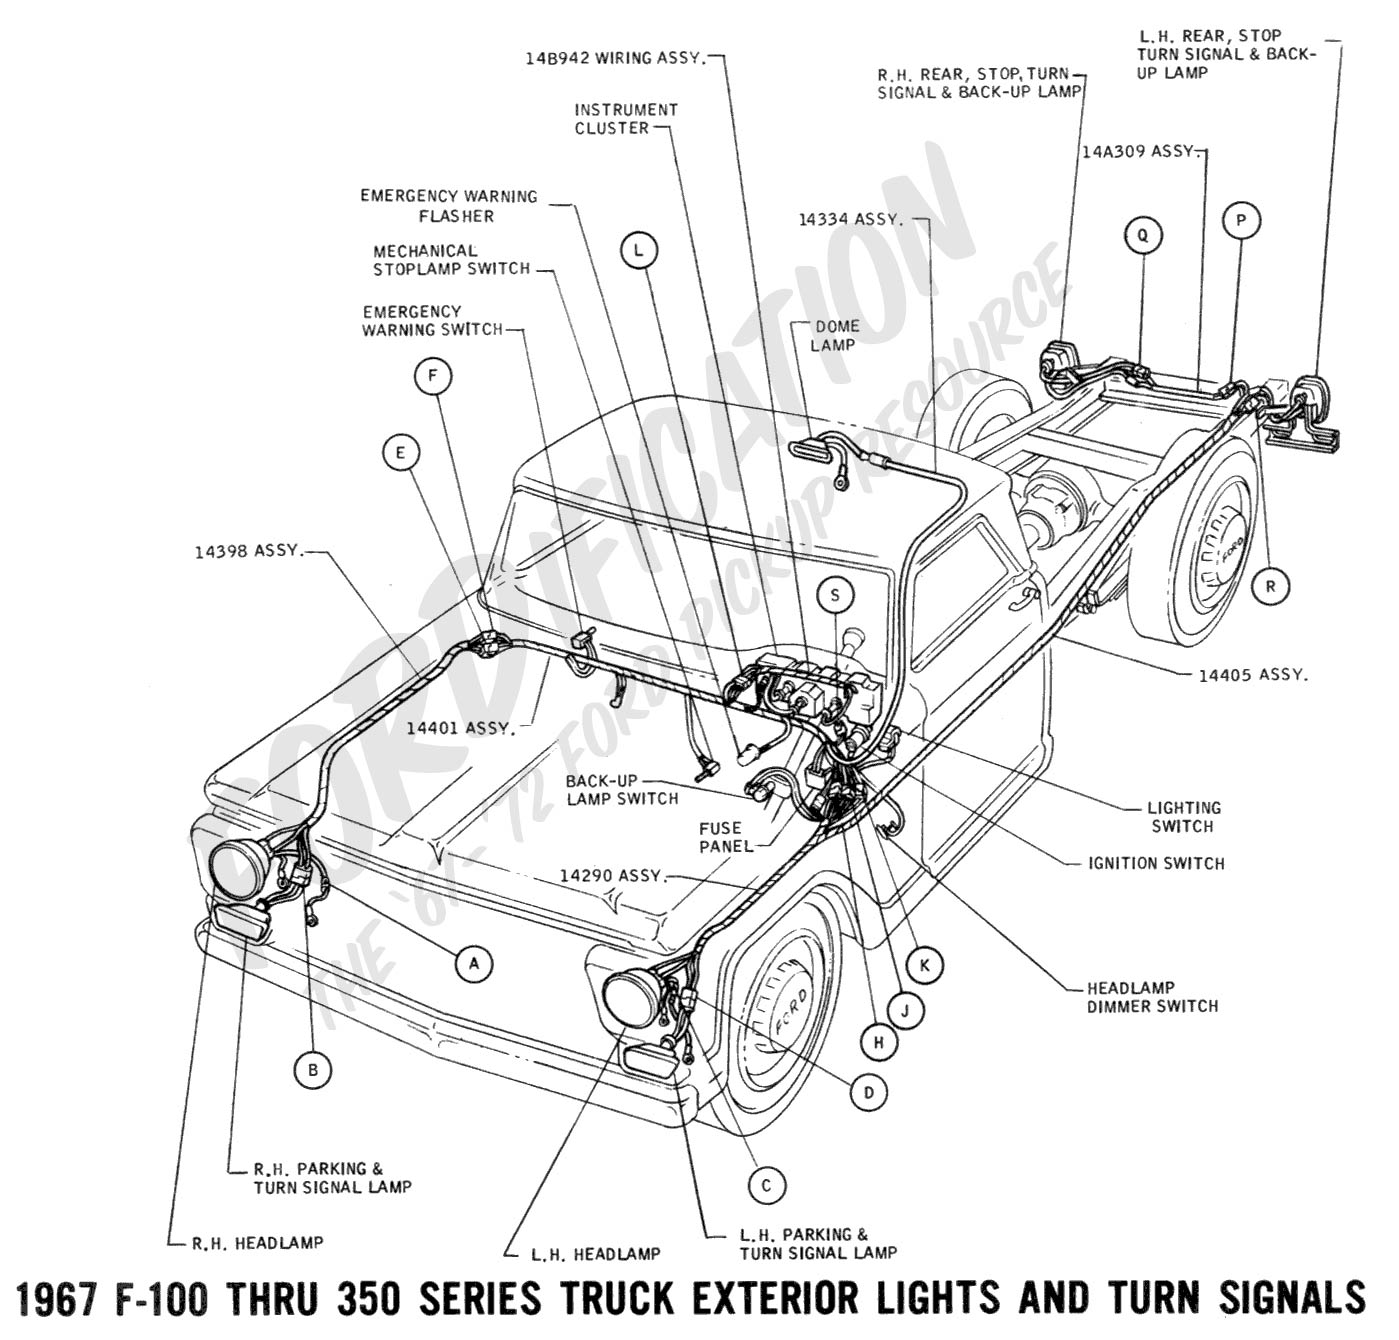 wiring 1967extlights01 ford truck technical drawings and schematics section h wiring GM Turn Signal Switch Diagram at suagrazia.org